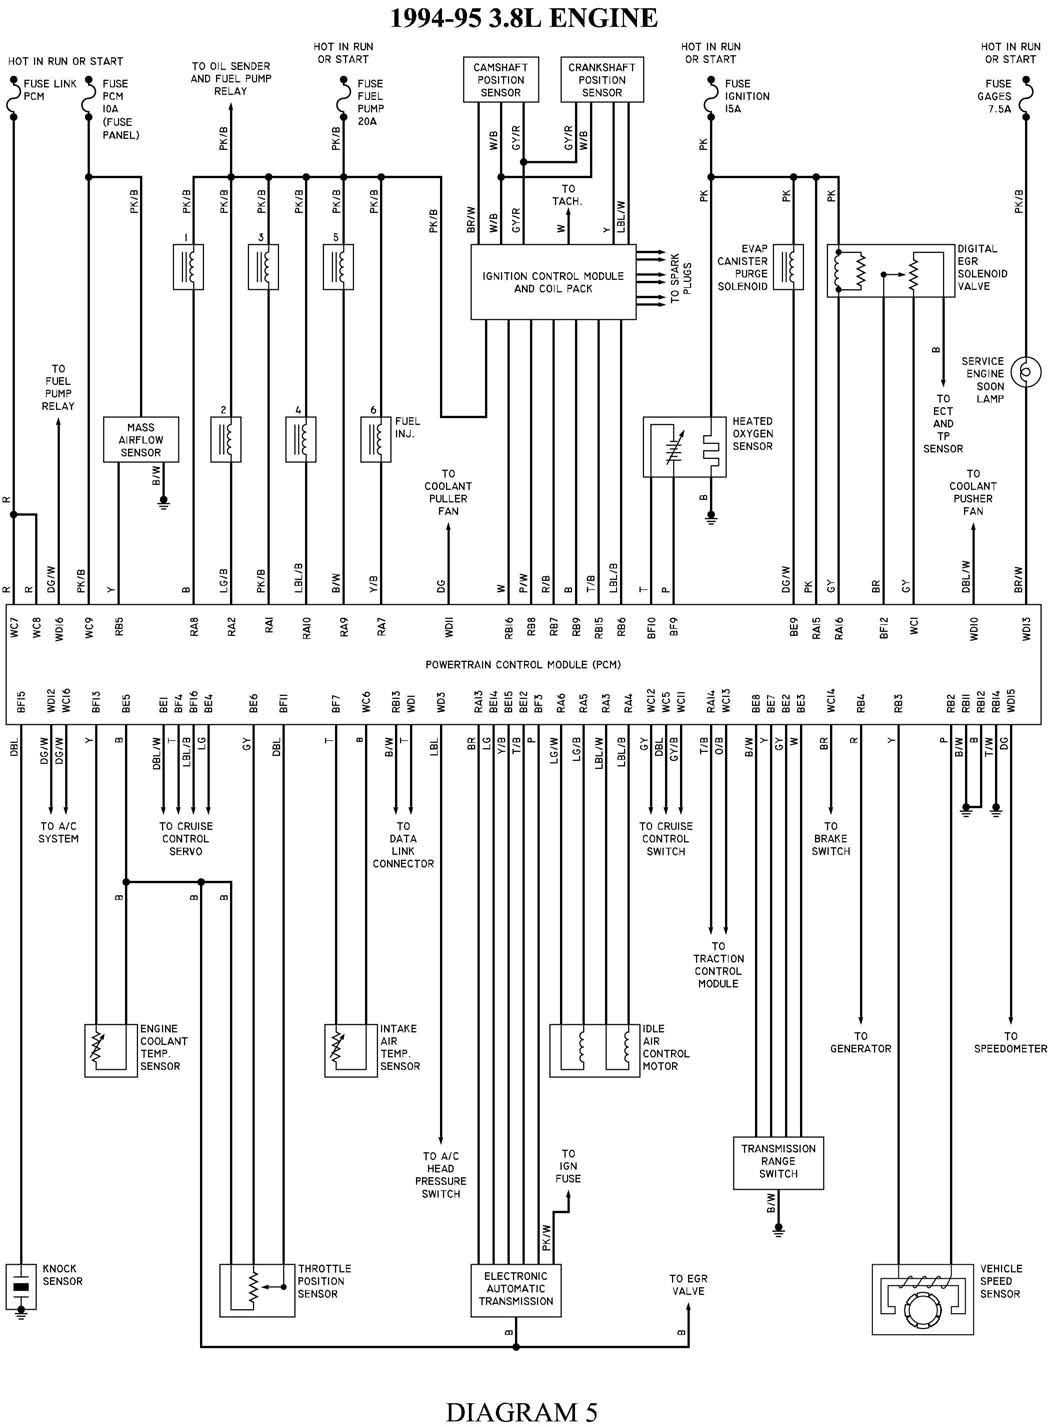 diagram] pontiac trans sport wiring diagram full version hd quality wiring  diagram - diagramamedia.denisbensimon.fr  diagram database - denisbensimon.fr